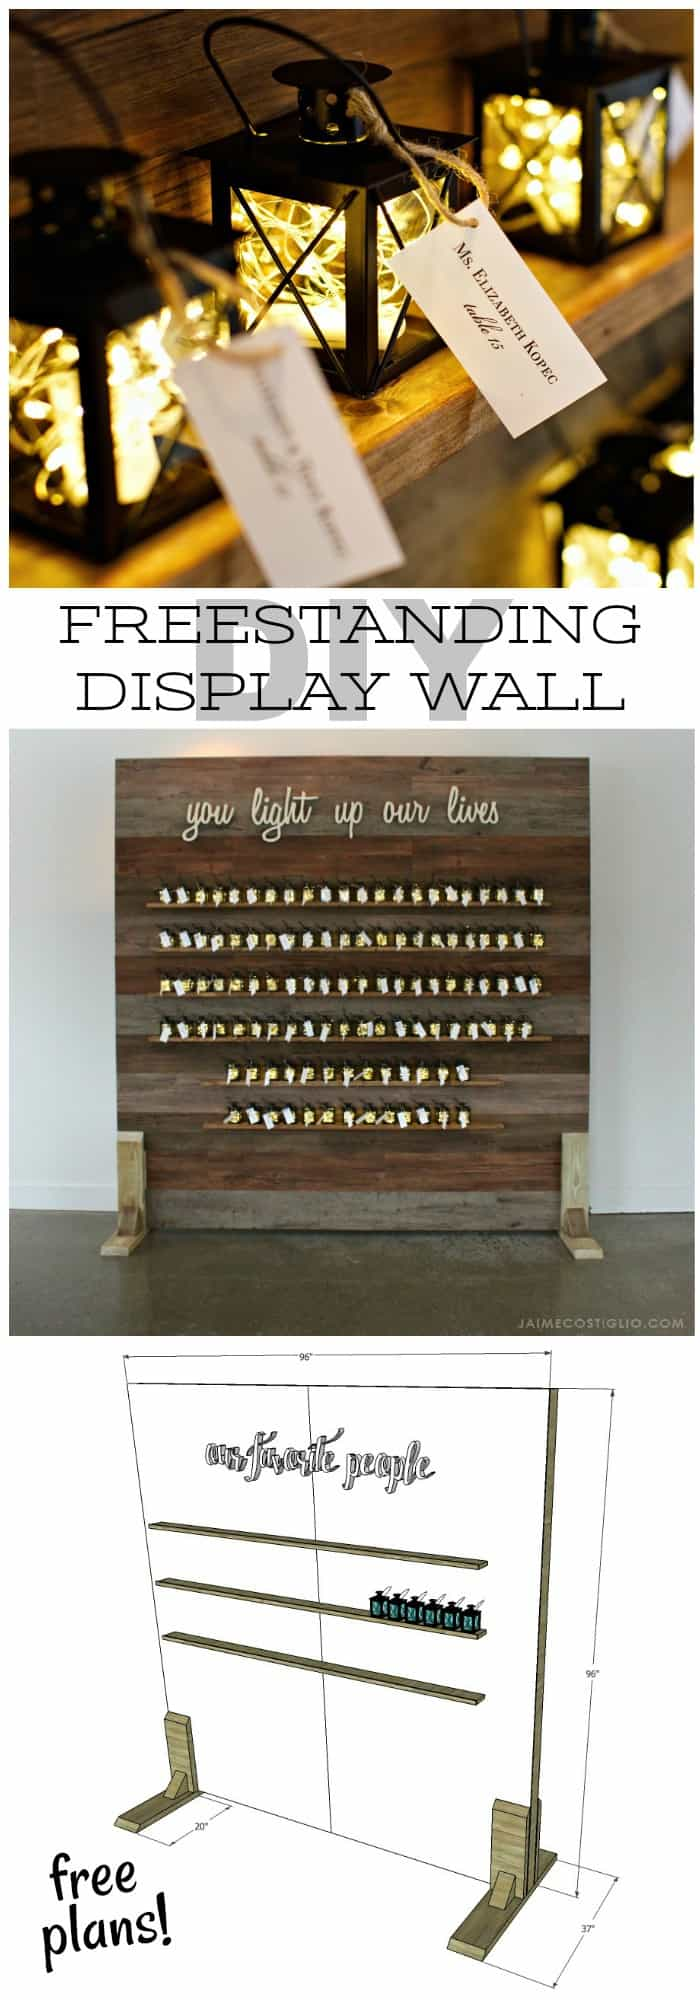 freestanding display wall free plans